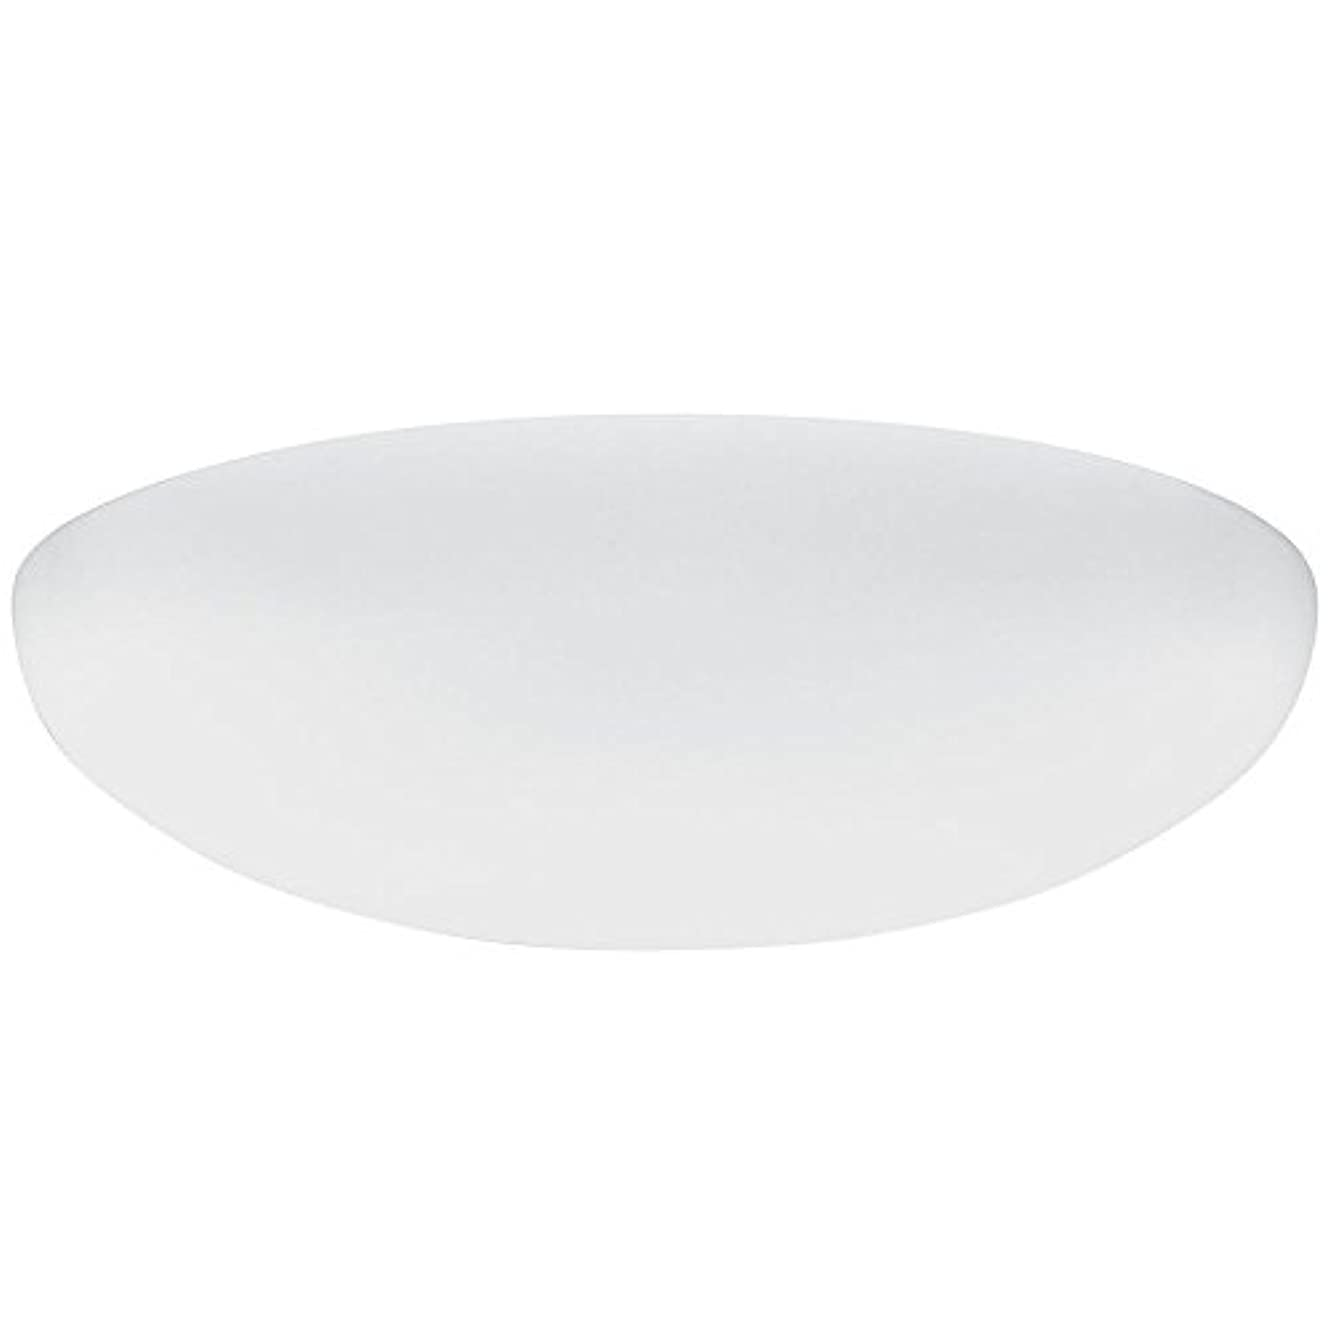 はぁ証明書投票Lithonia Lighting DFMLRL14 M4 Replacement Diffuser, 14, White by Lithonia Lighting